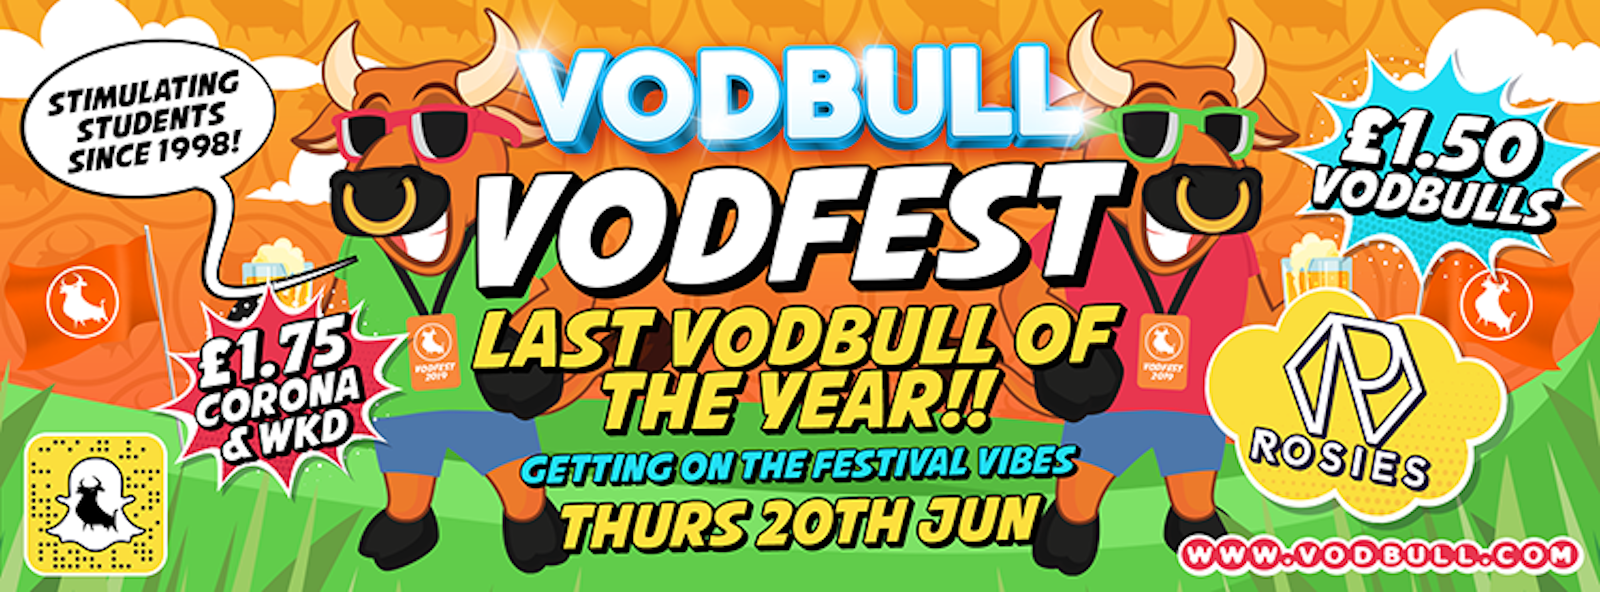 VODFEST!! FINAL VODBULL OF THE YEAR!!!! {75% SOLD OUT}